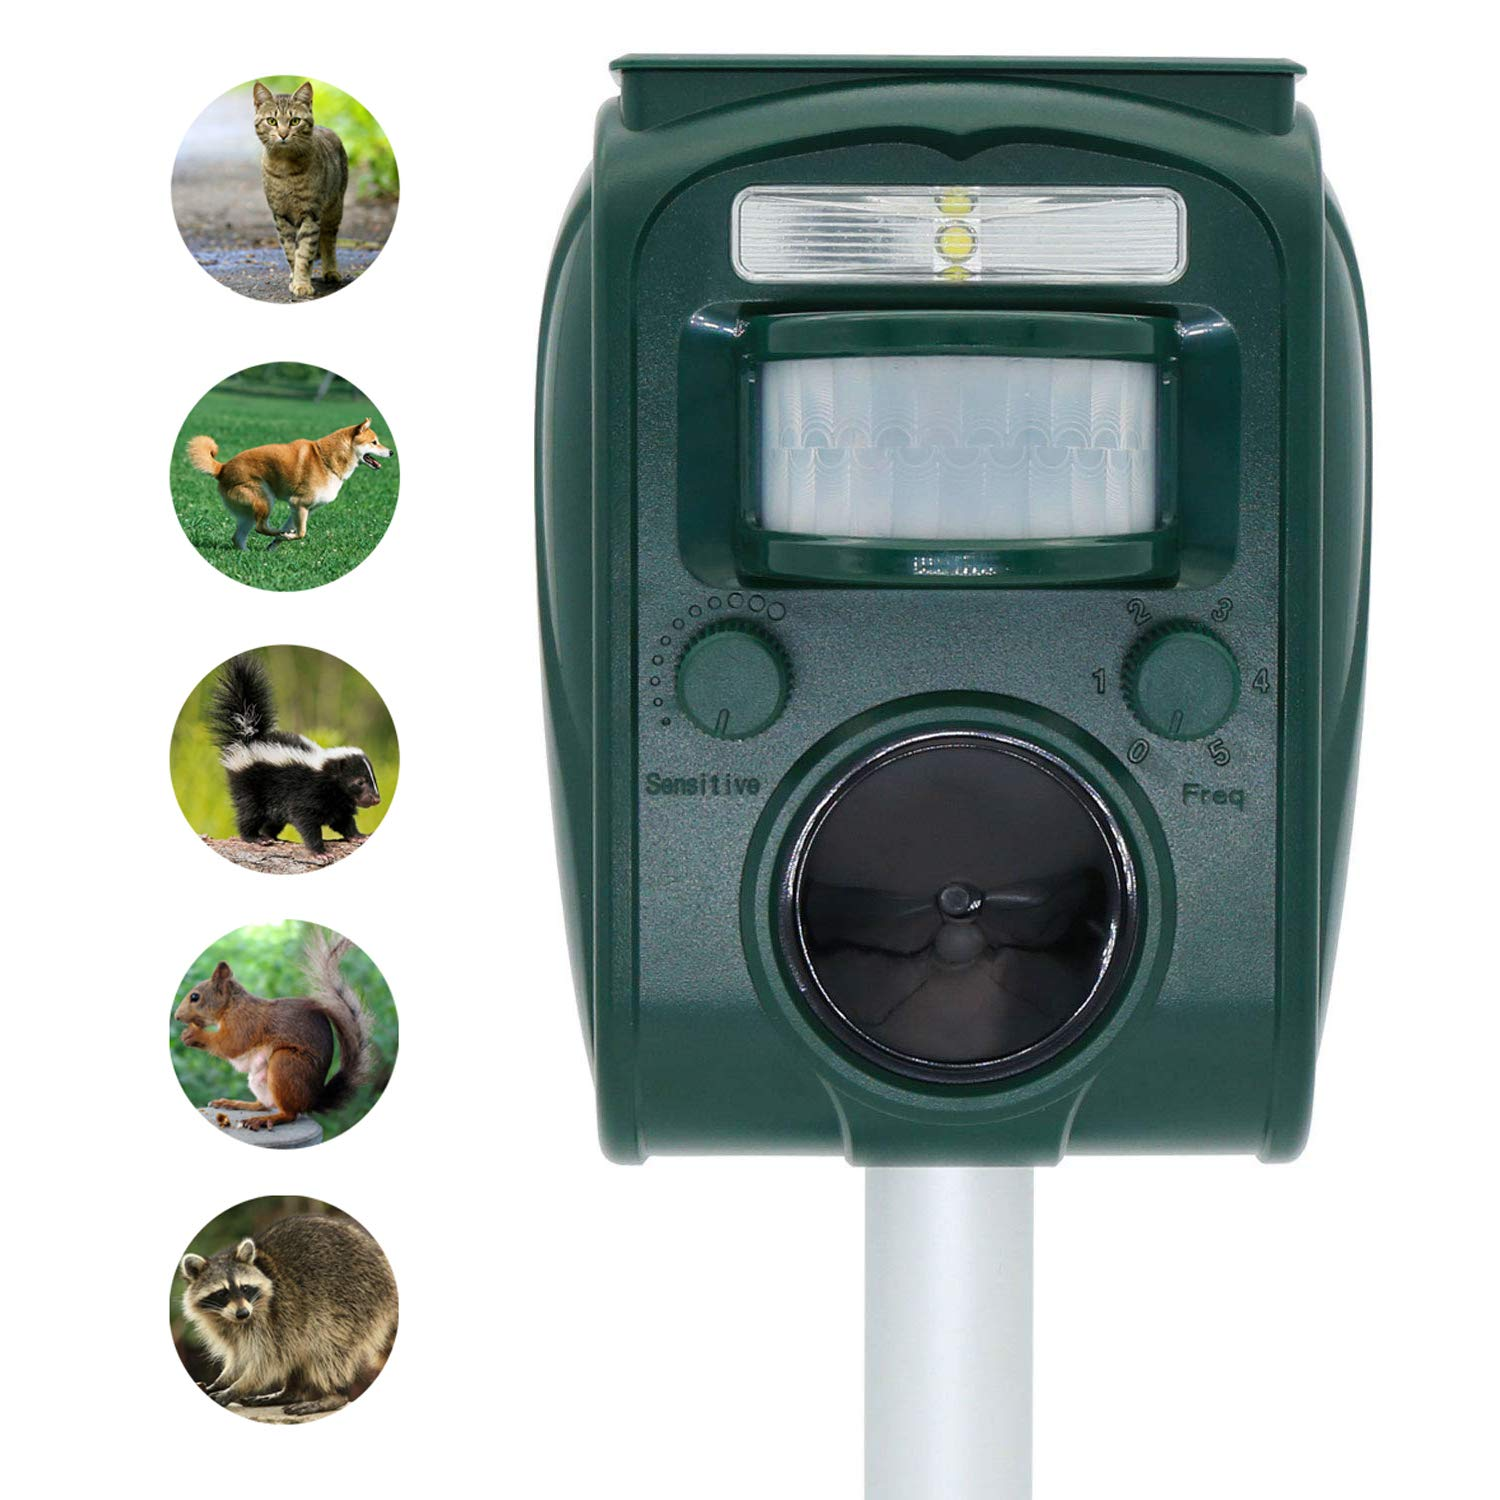 ZOVENCHI Ultrasonic Pest Repeller, Solar Powered Waterproof Outdoor Animal Repeller with Ultrasonic Sound, Motion Sensor and Flashing Light pest Repeller for Cats, Dogs, Squirrels, Moles, Rats by ZOVENCHI